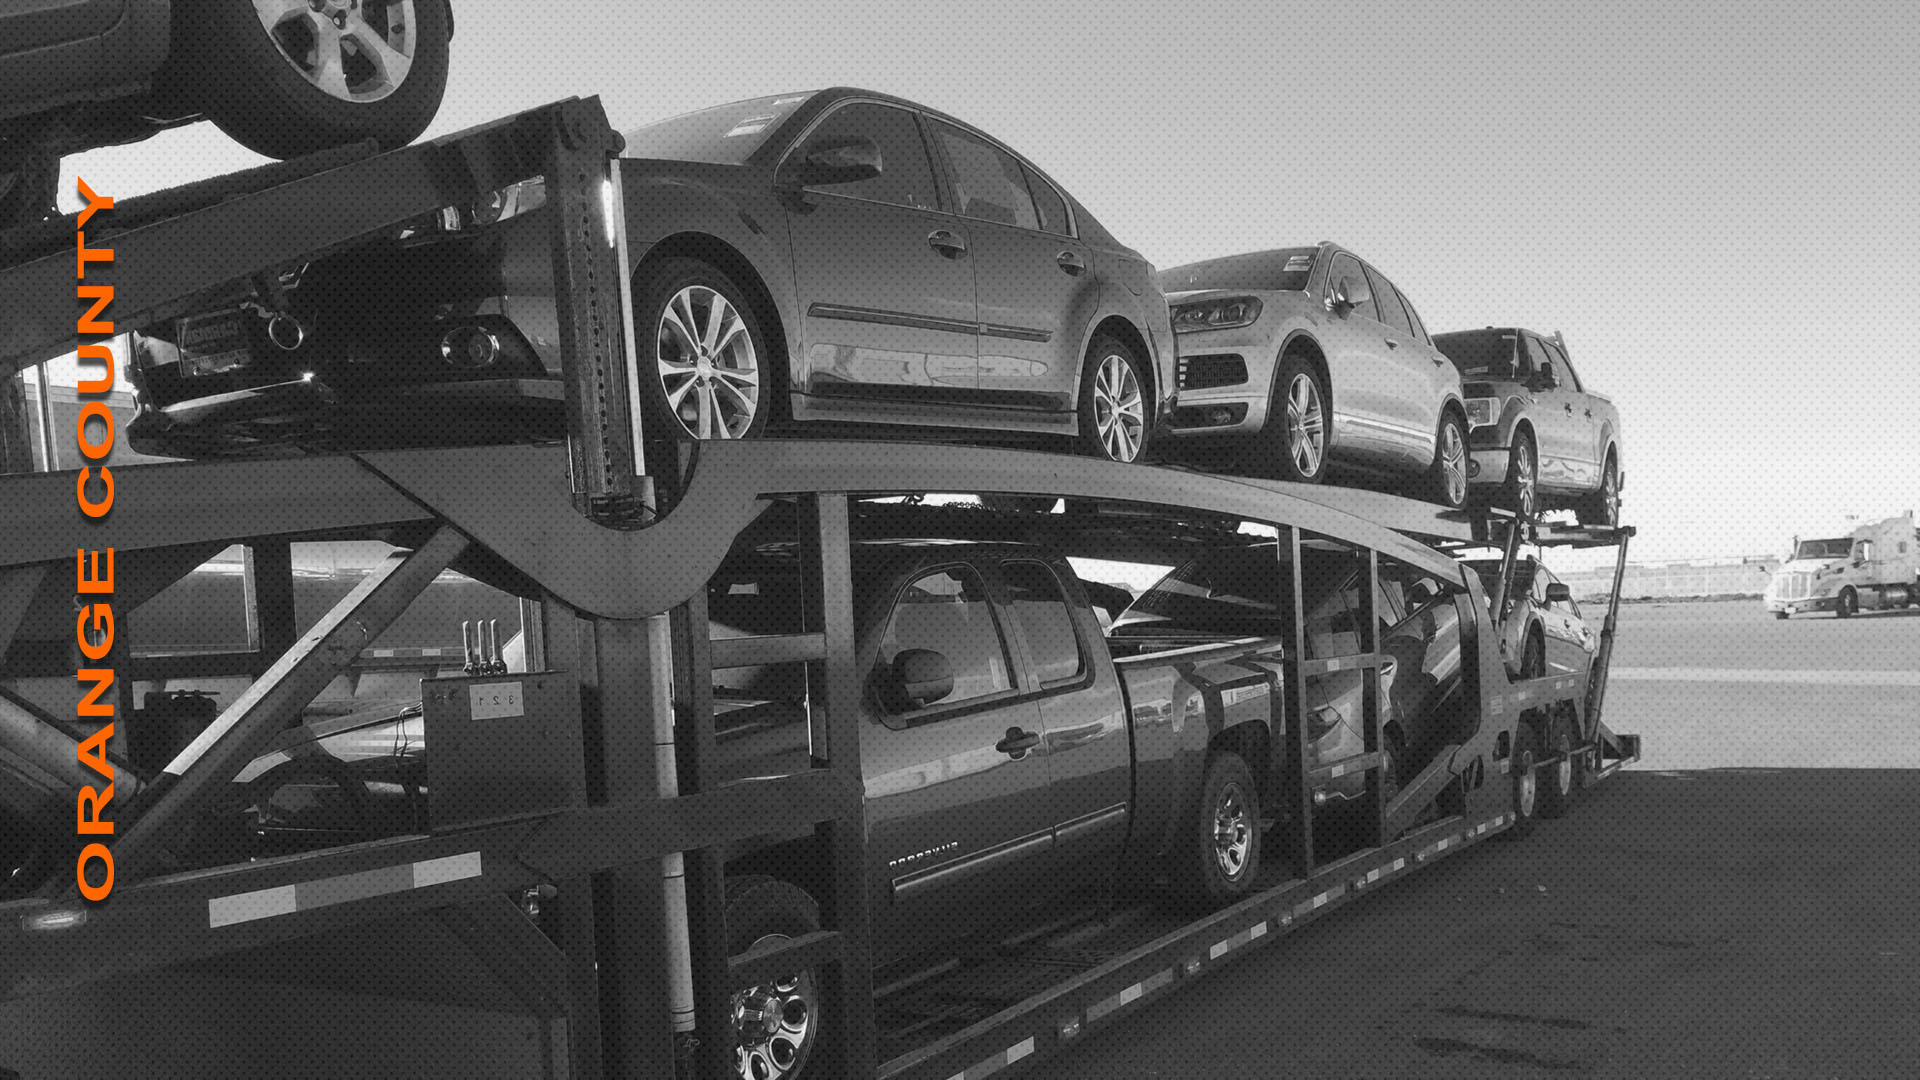 Fully loaded auto transporter.